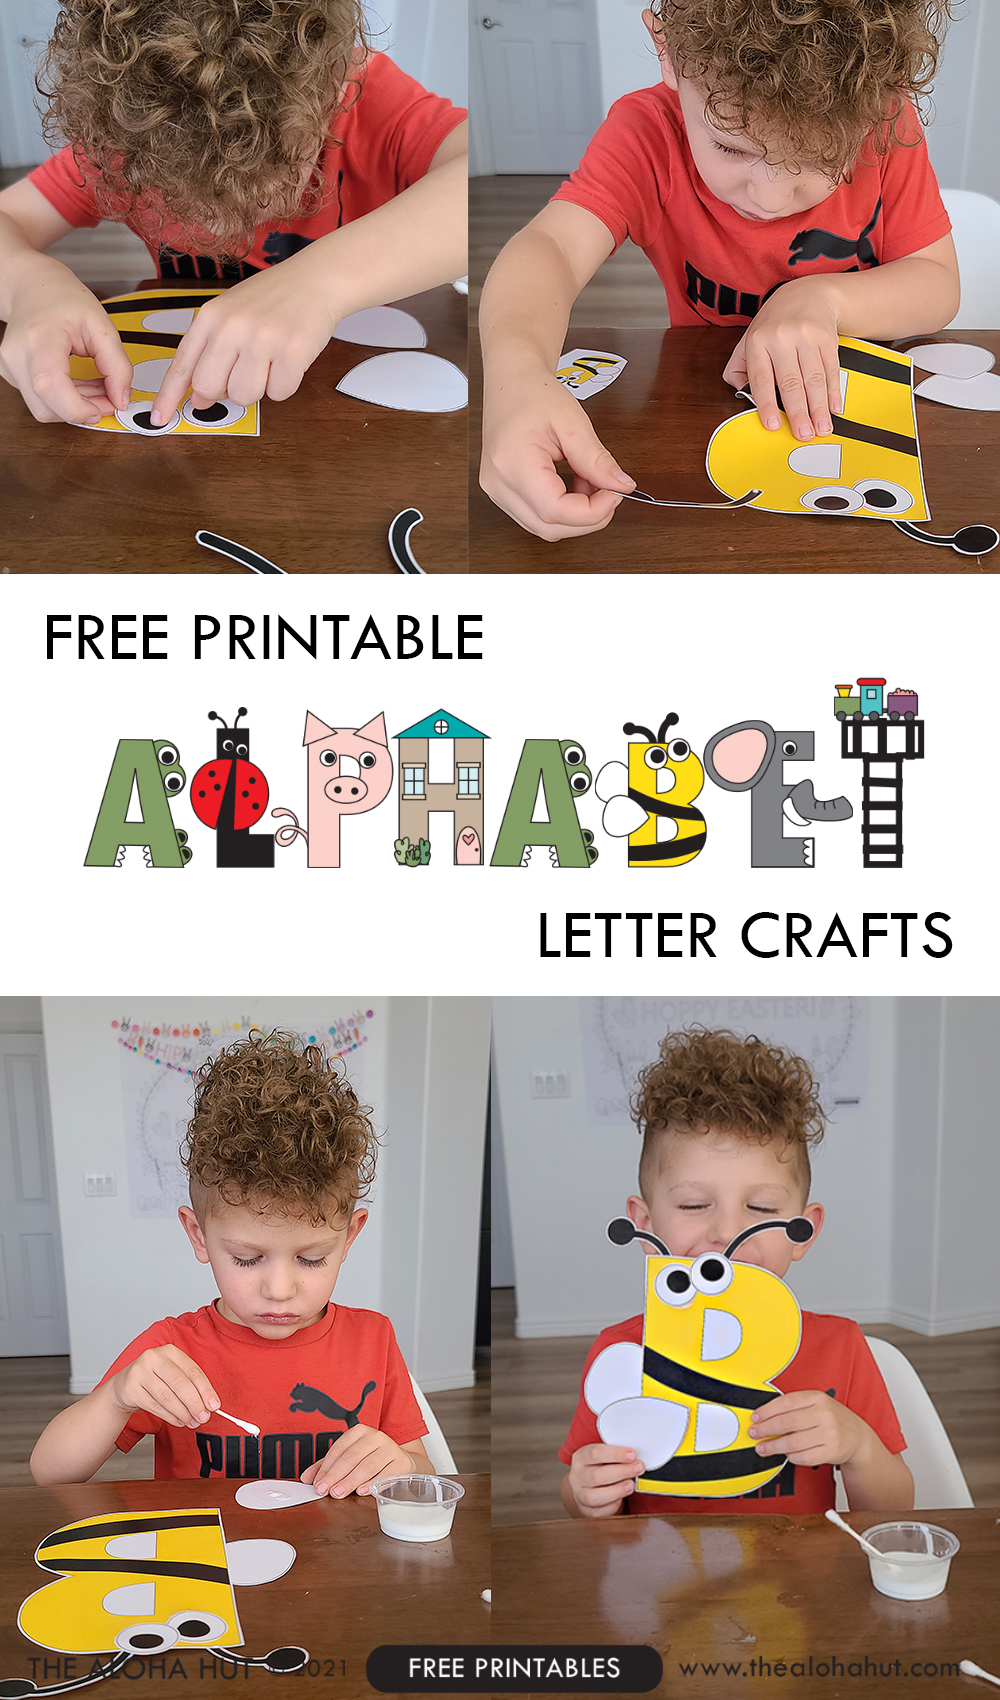 Alphabet Letter Crafts - Letter B - free printable 2 by the Aloha Hut